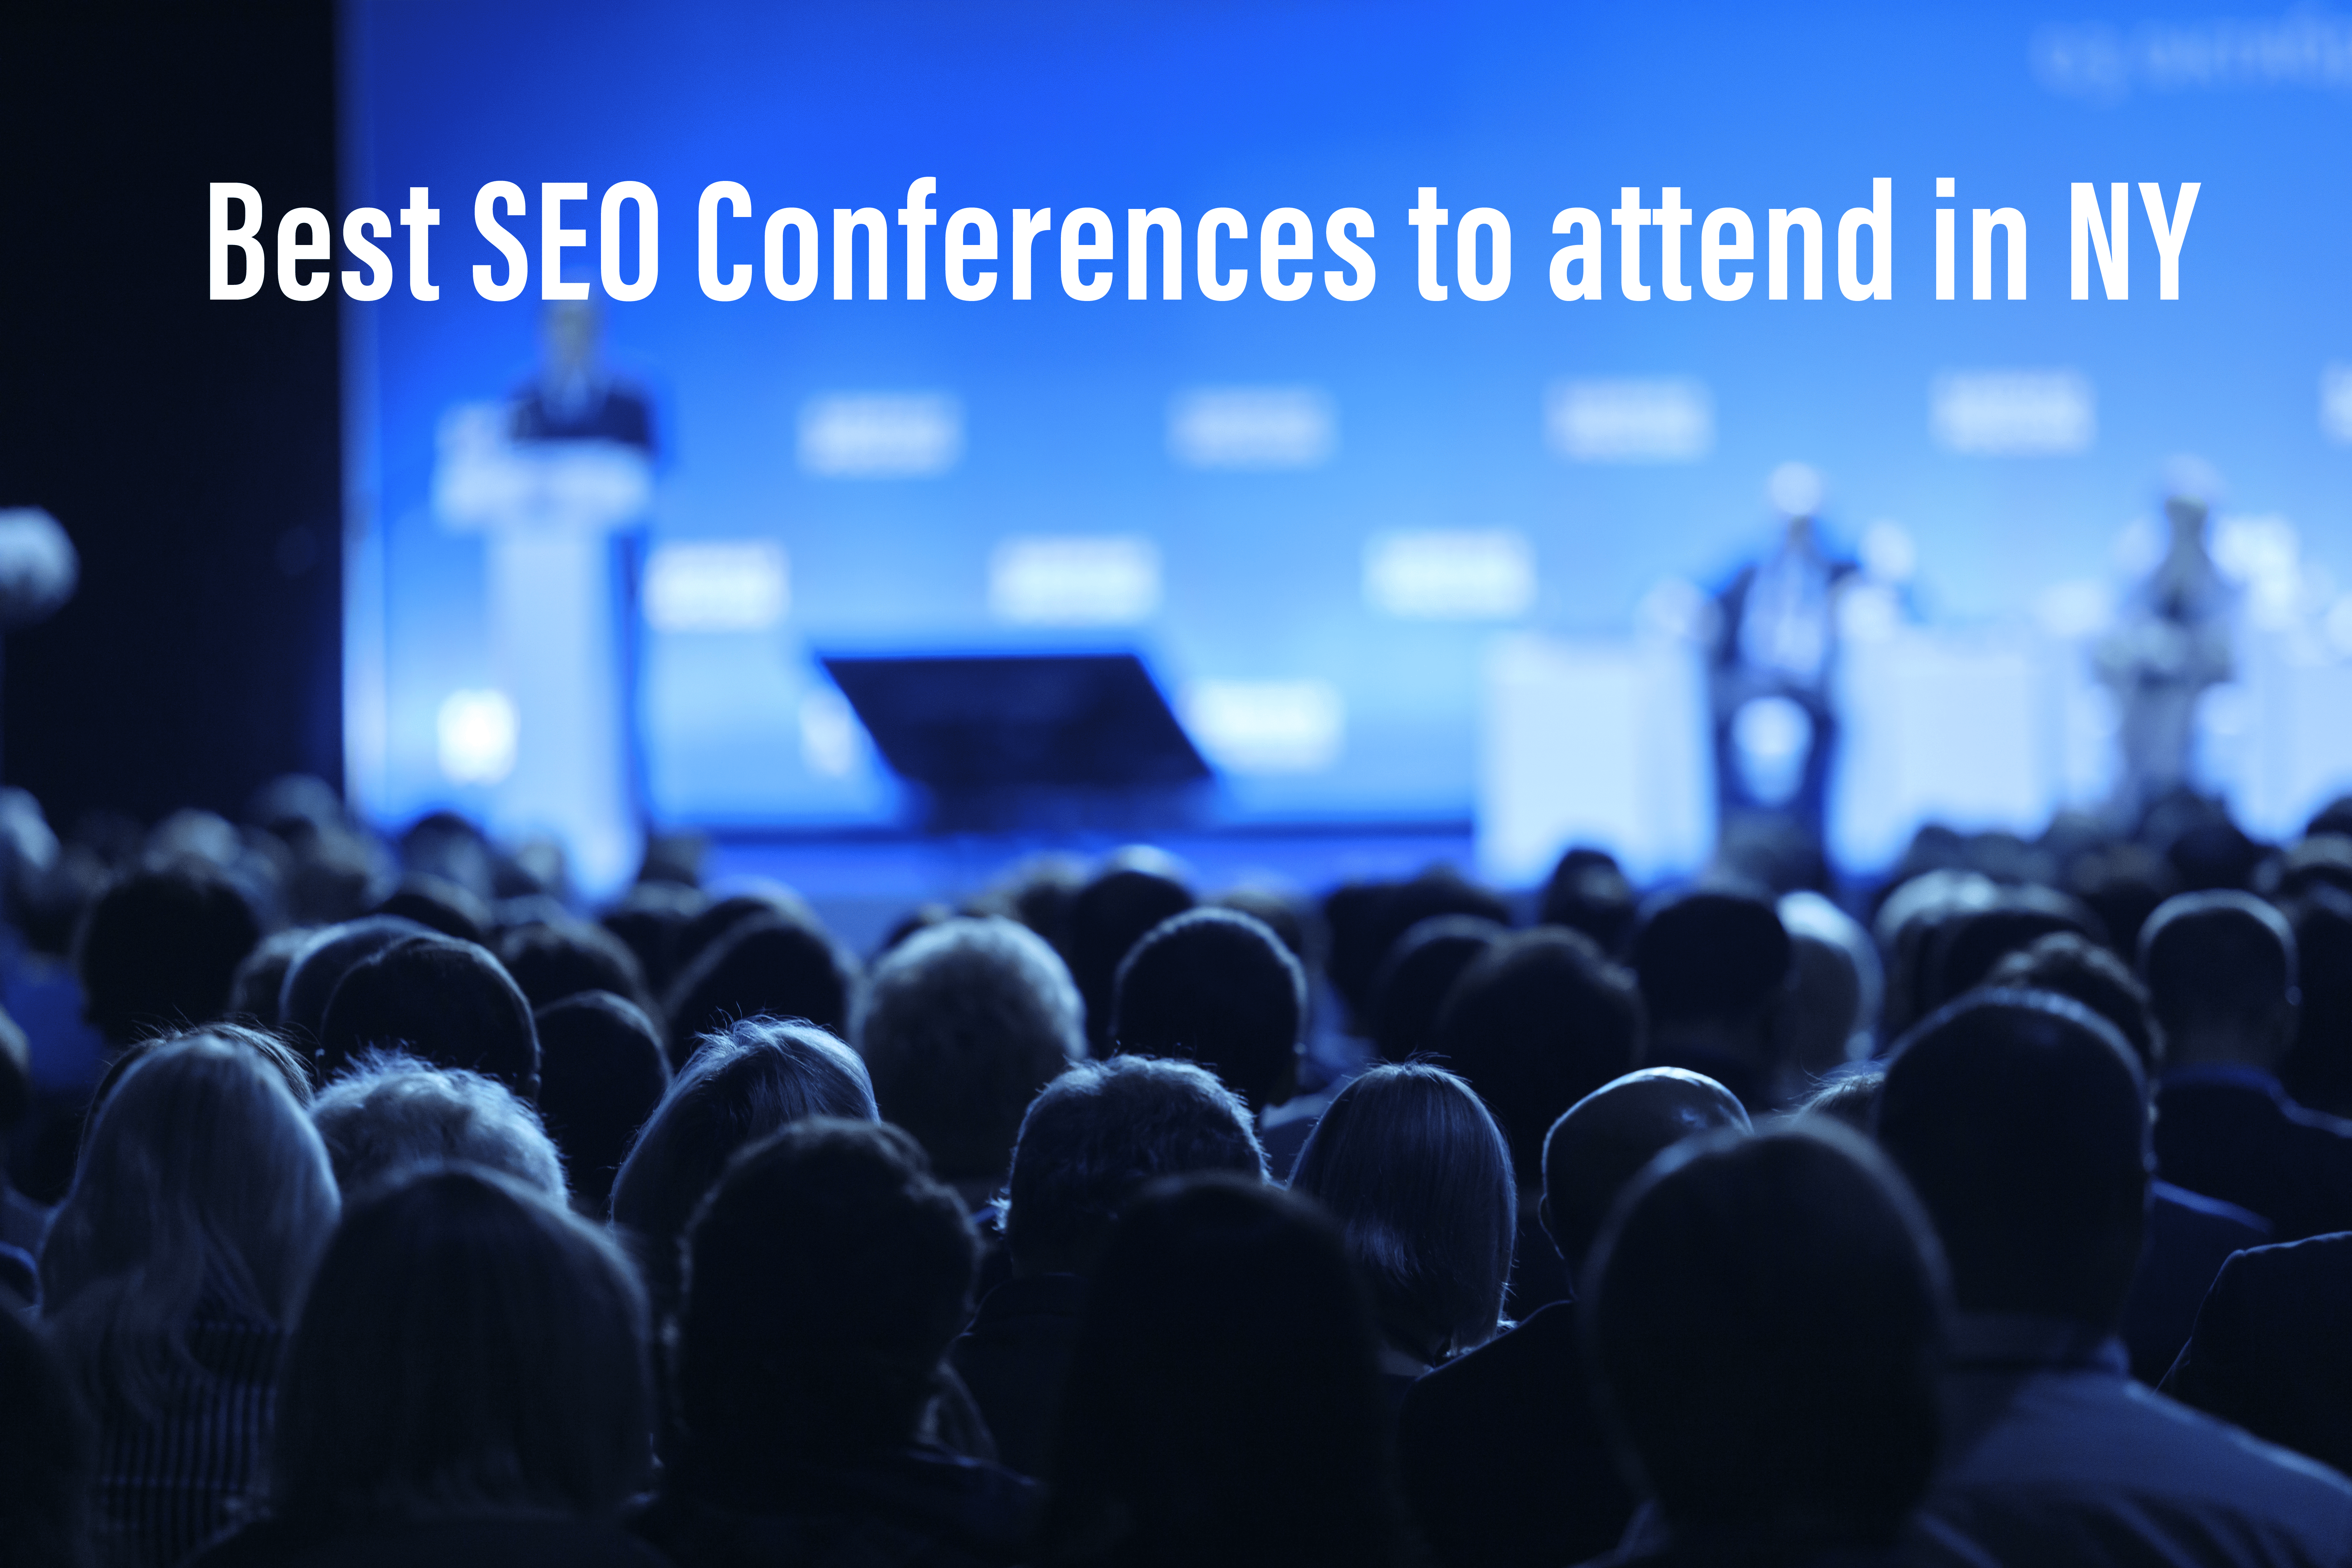 Best SEO Conferences in NY for 2021